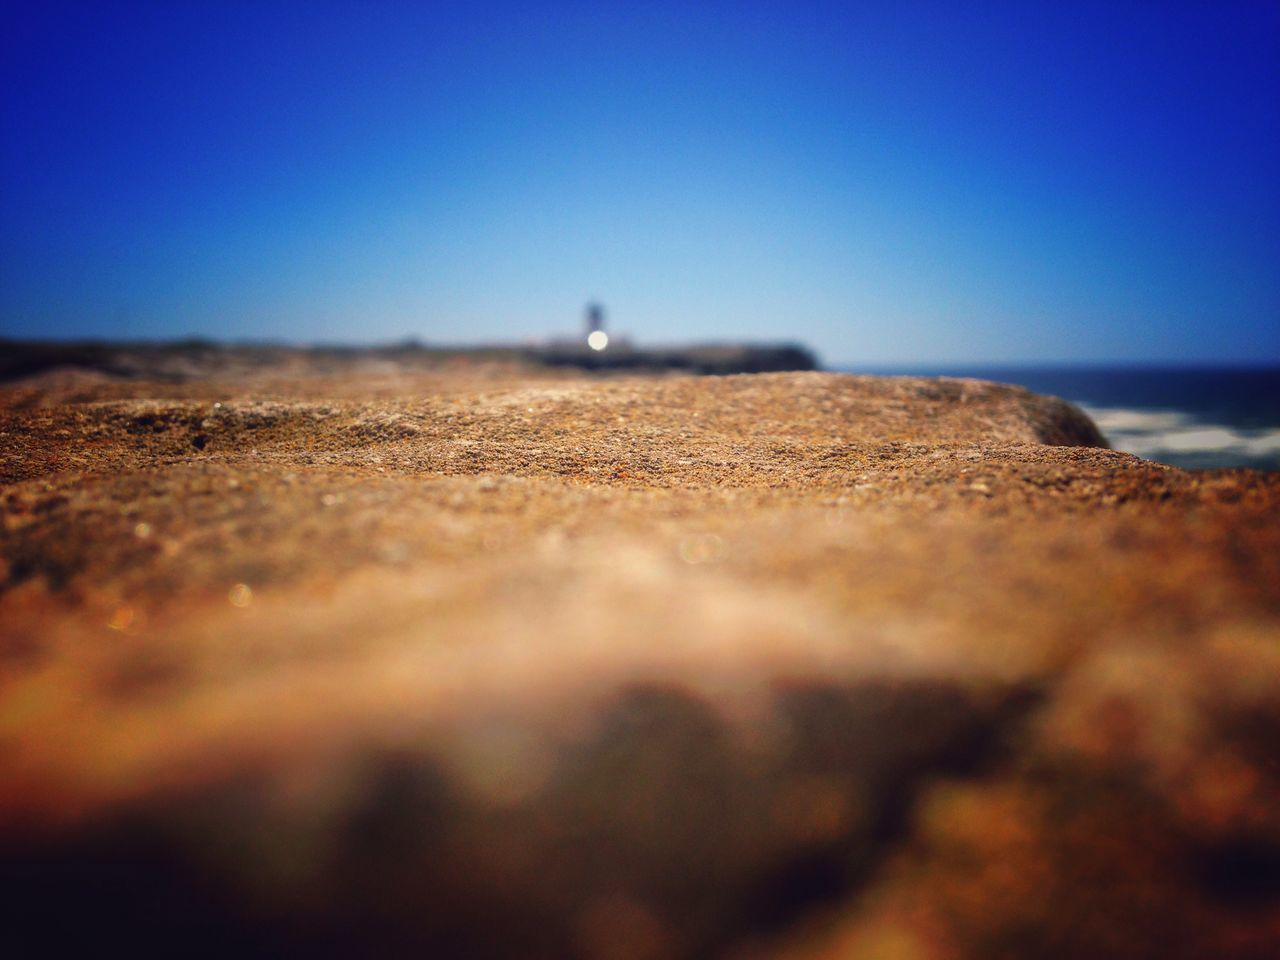 selective focus, clear sky, surface level, beauty in nature, nature, blue, tranquility, scenics, tranquil scene, outdoors, sky, no people, landscape, sea, tilt-shift, day